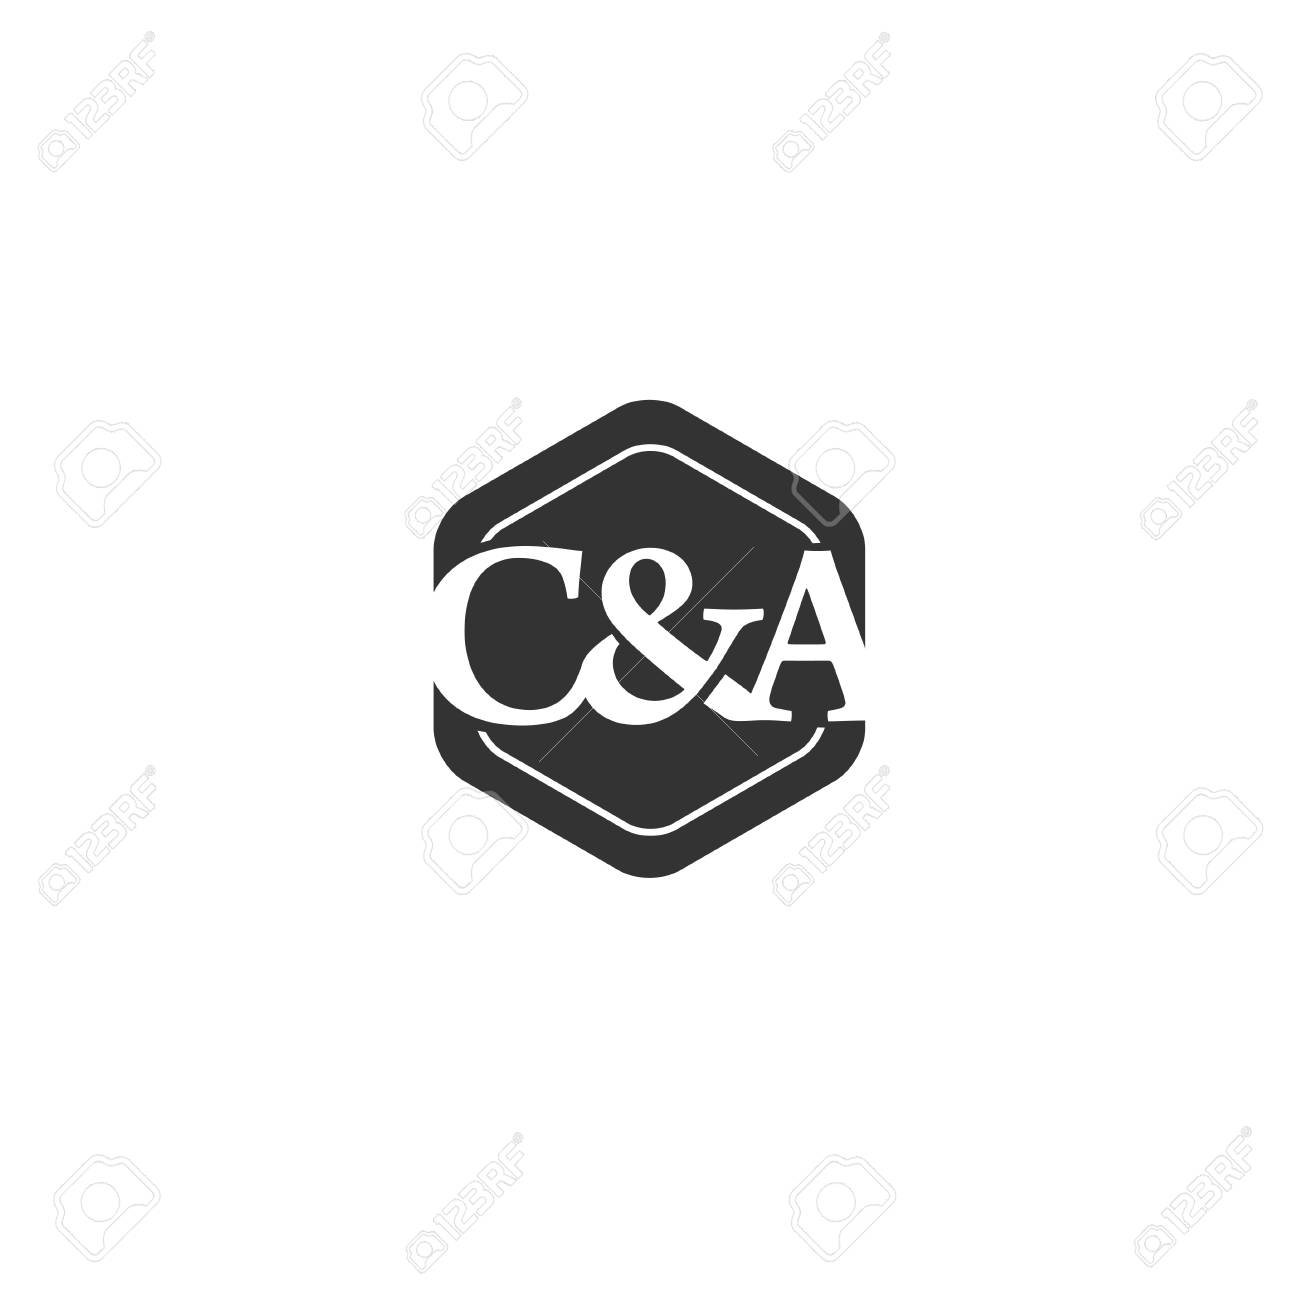 C&A,C and A letter logo design vector illustration template,creative...